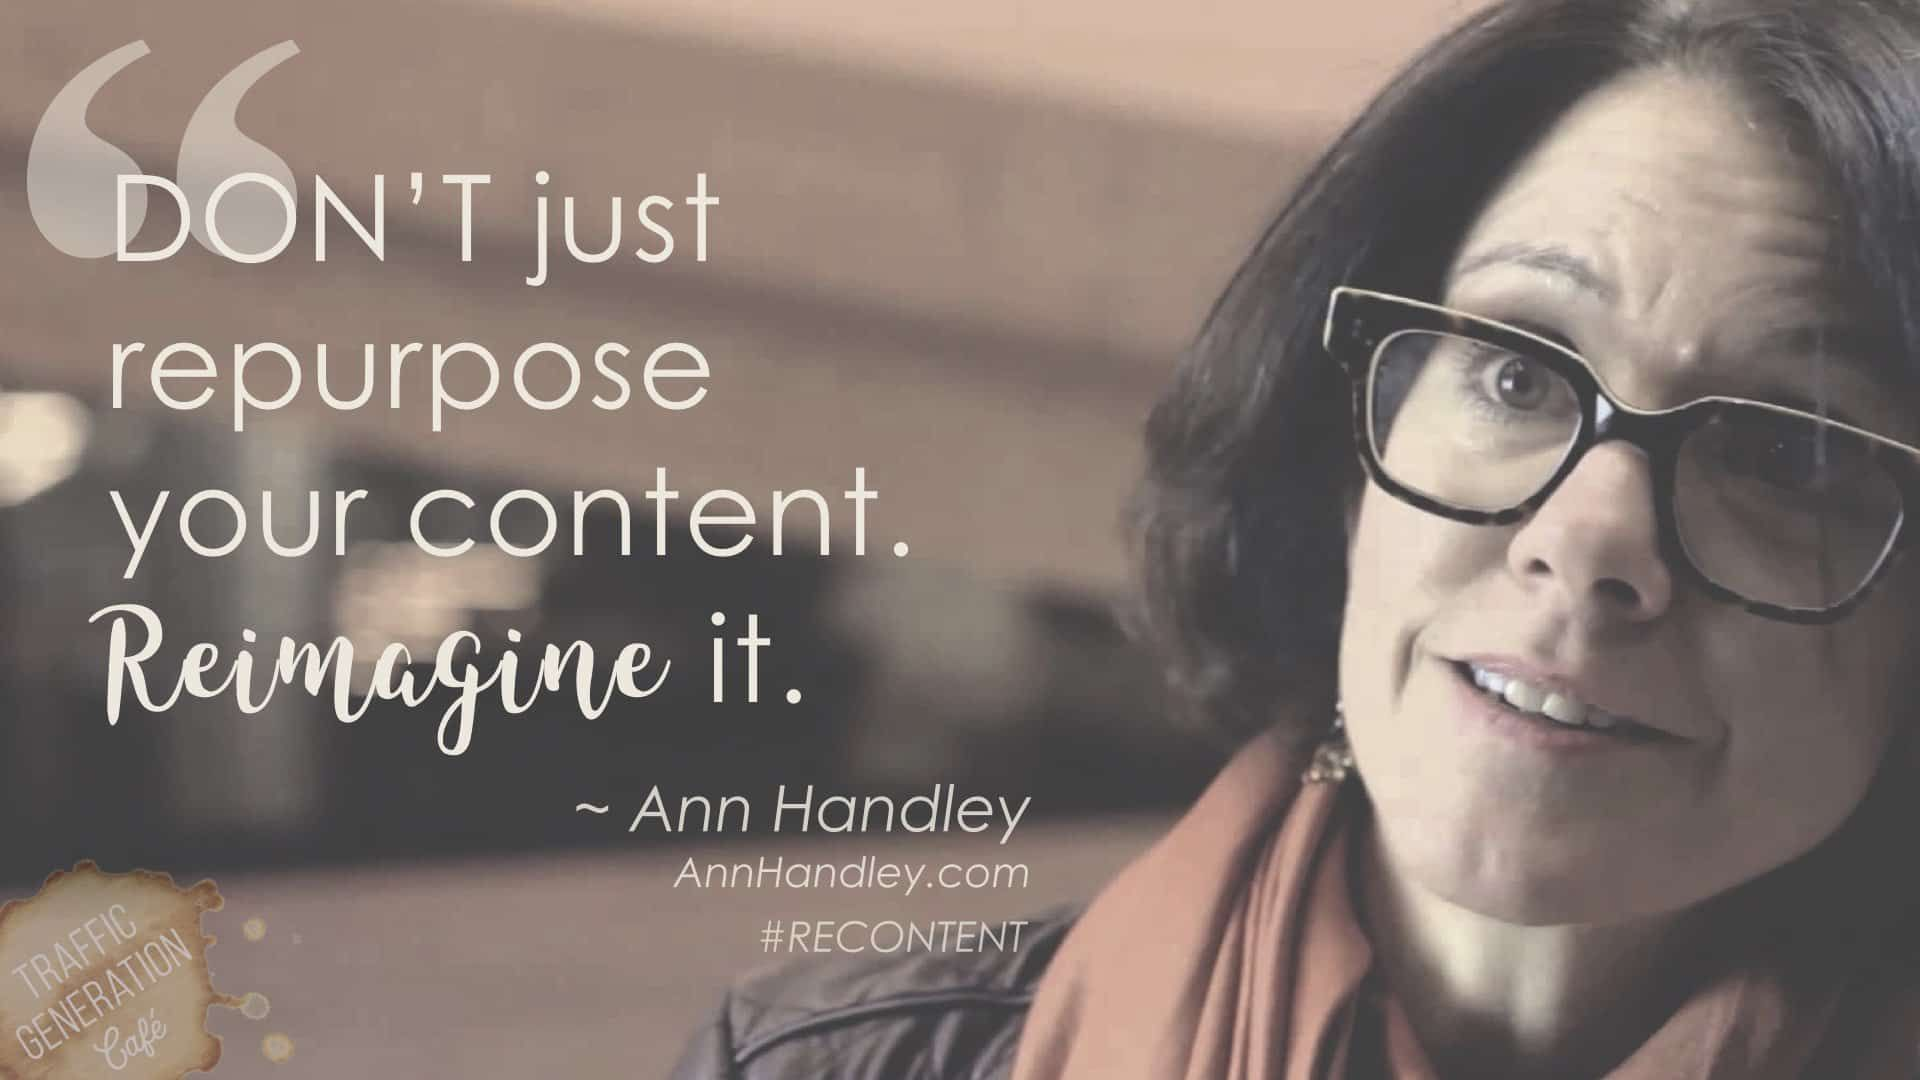 Best content repurposing advice by Ann Handley on Traffic Generation Cafe